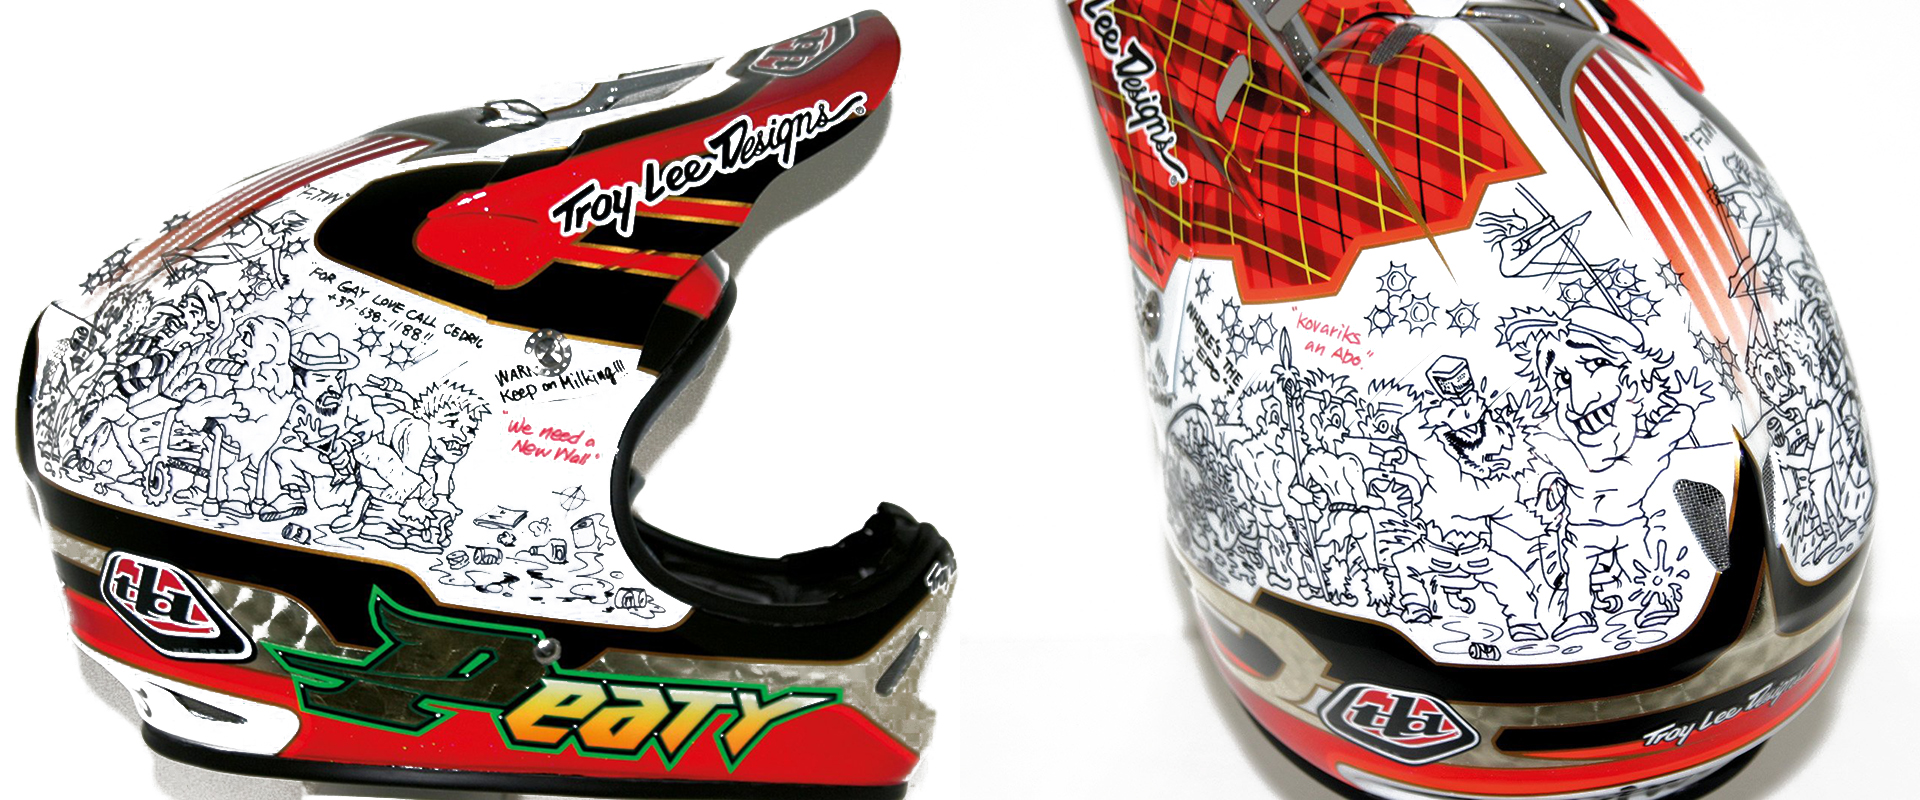 One of the many Troy Lee helmets on display in 'Bikes and Beers'